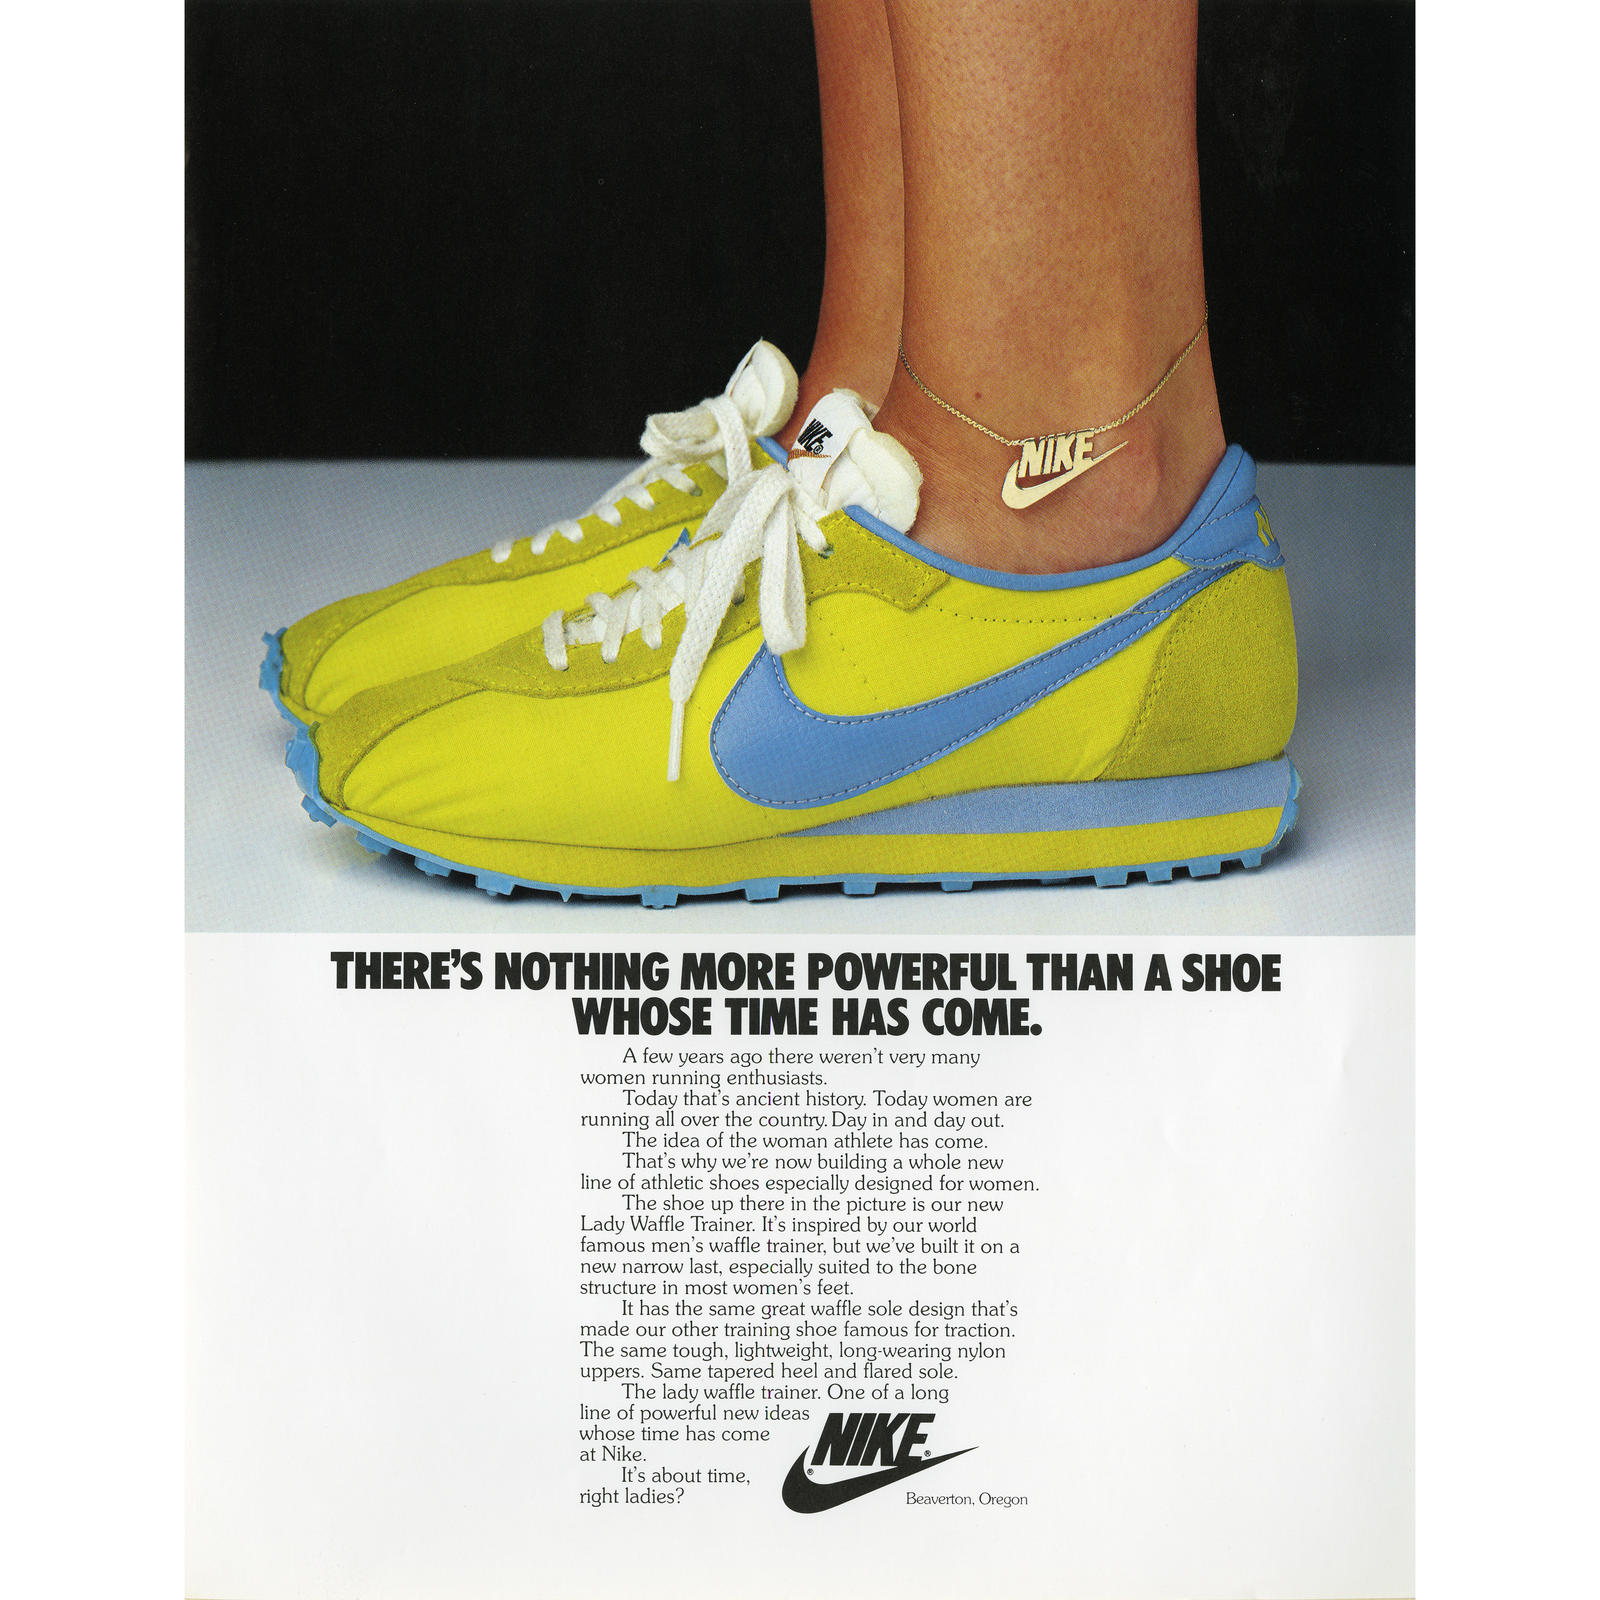 Nike Tennis Shoes Ads